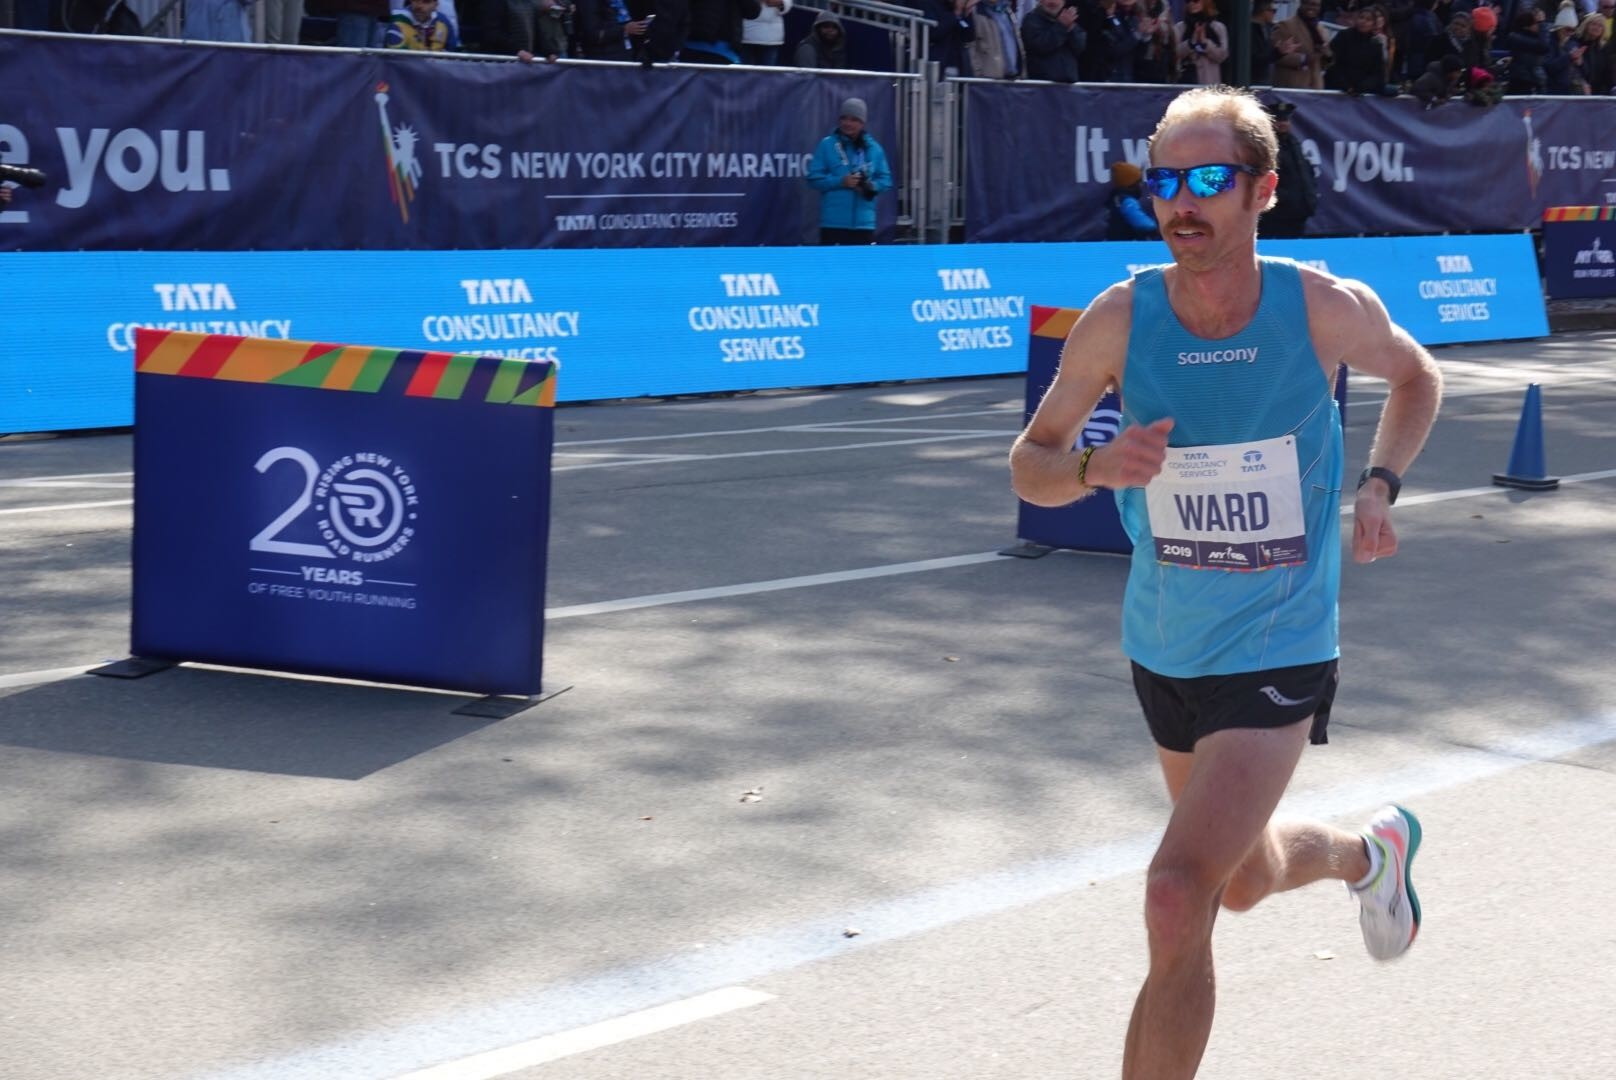 Next stop for Jared Ward is the the U.S. Marathon Trials in February